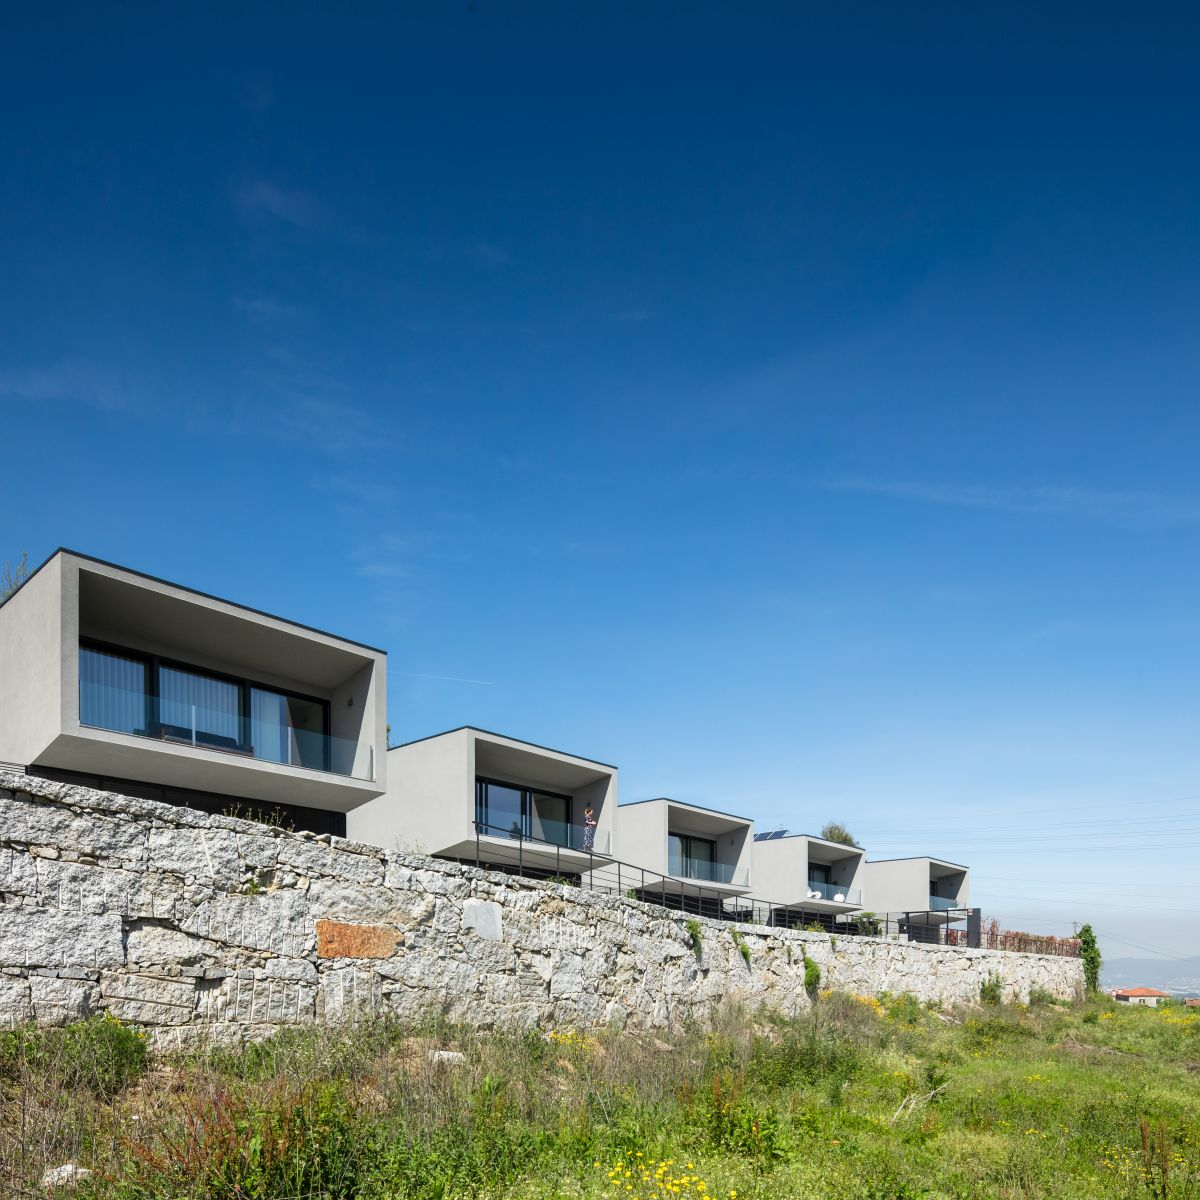 Each house has two floors, with the upper level ending in a framed terrace with glass railings